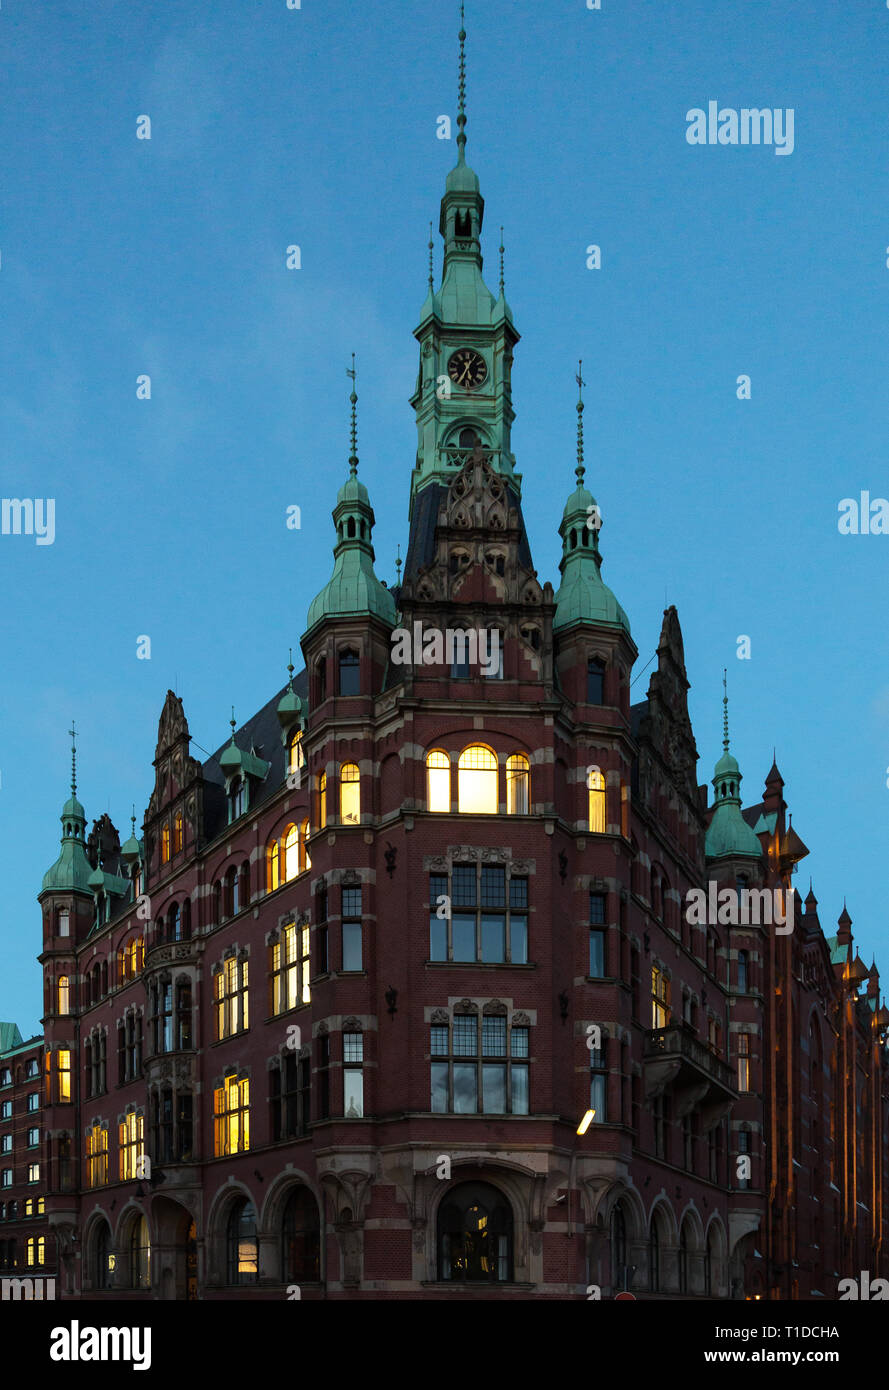 06.02.2017, Hamburg, Hamburg, Germany - Building in the Speicherstadt, the world's largest historical warehouse complex. Since 2015 it has been on the Stock Photo